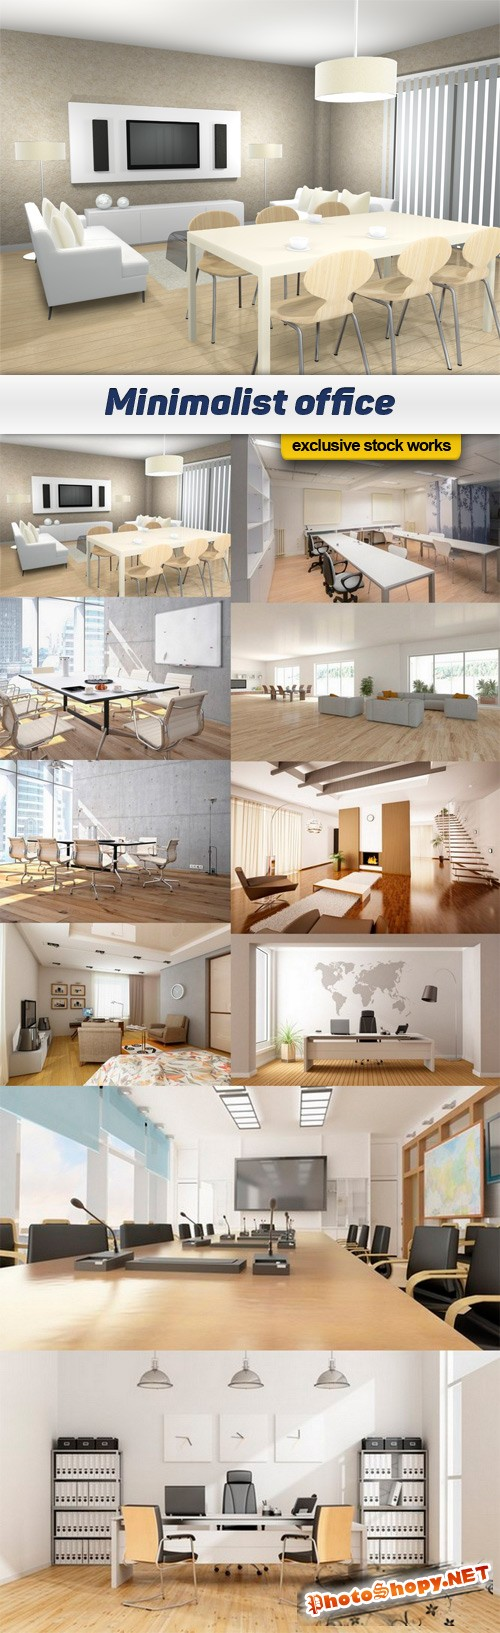 Minimalist office - 10 UHQ JPEG